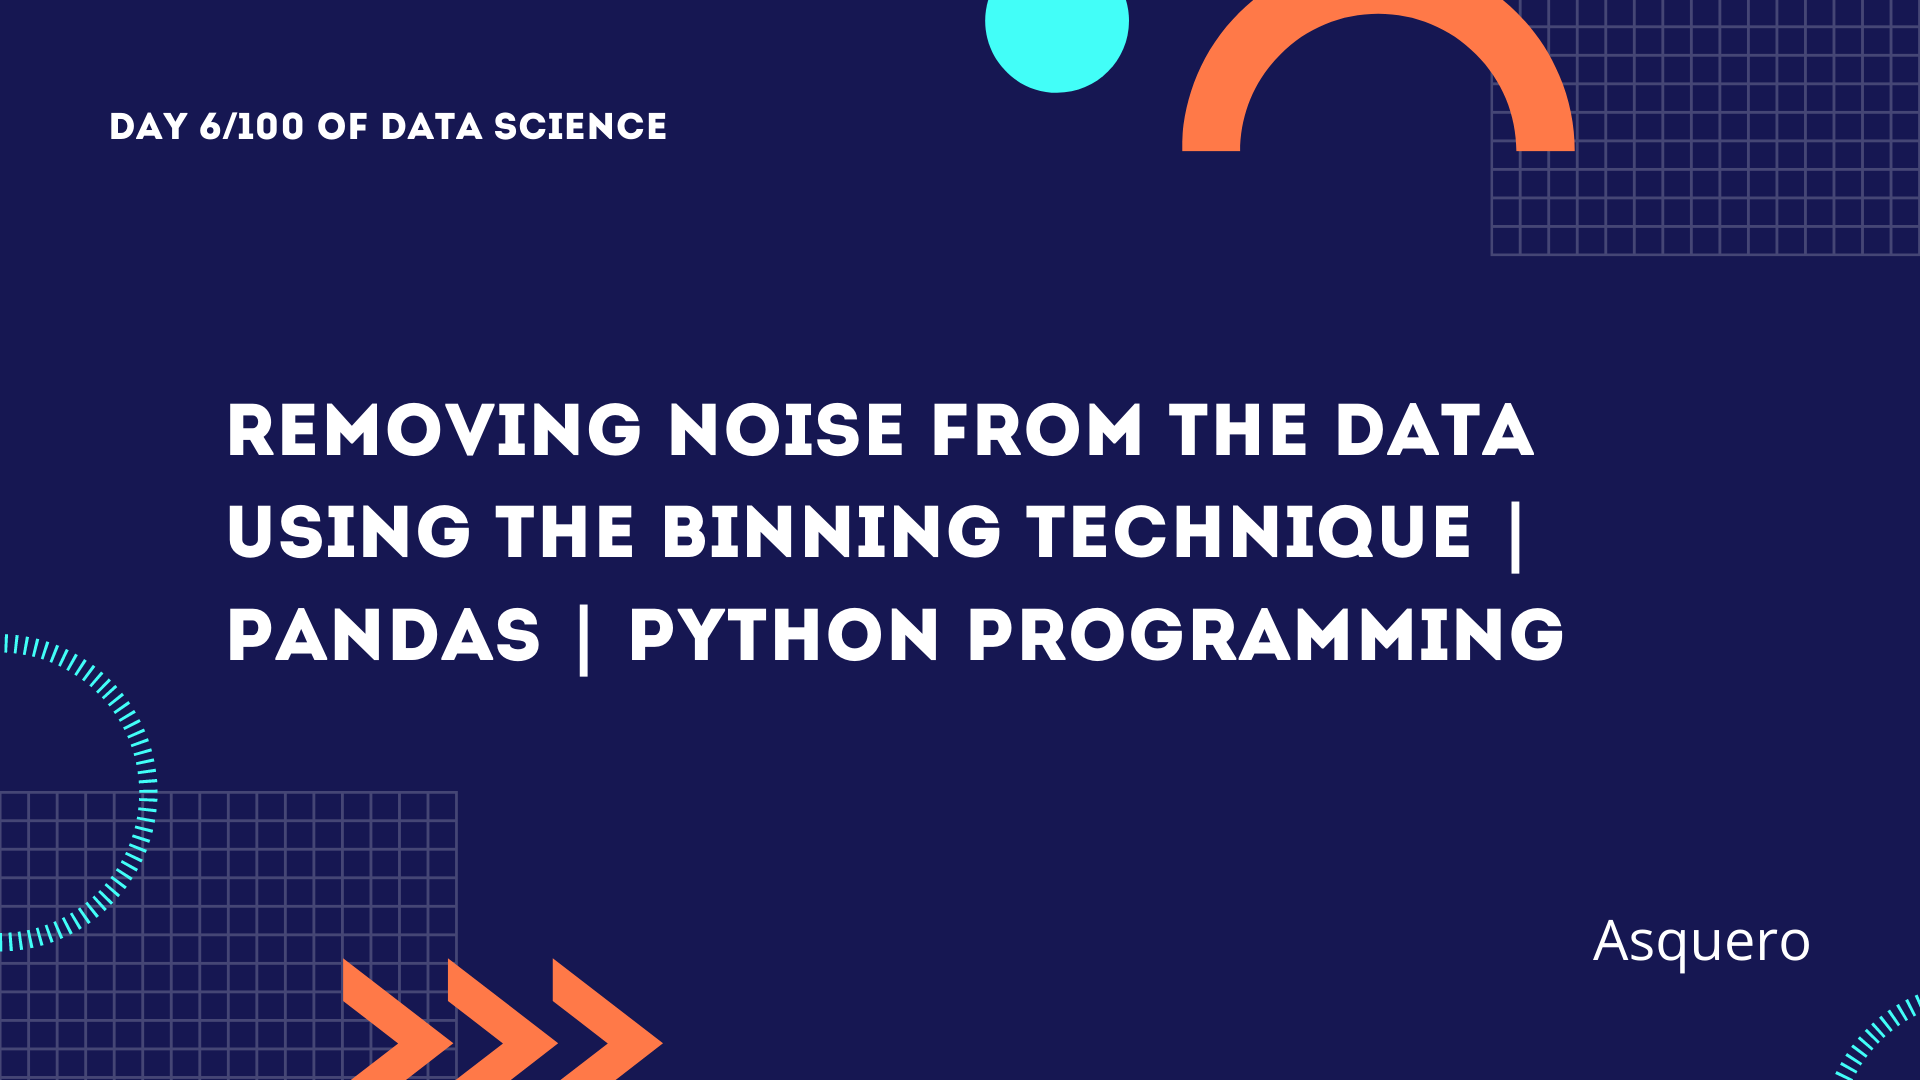 Removing noise from the data using the Binning Technique | Pandas | Python Programming